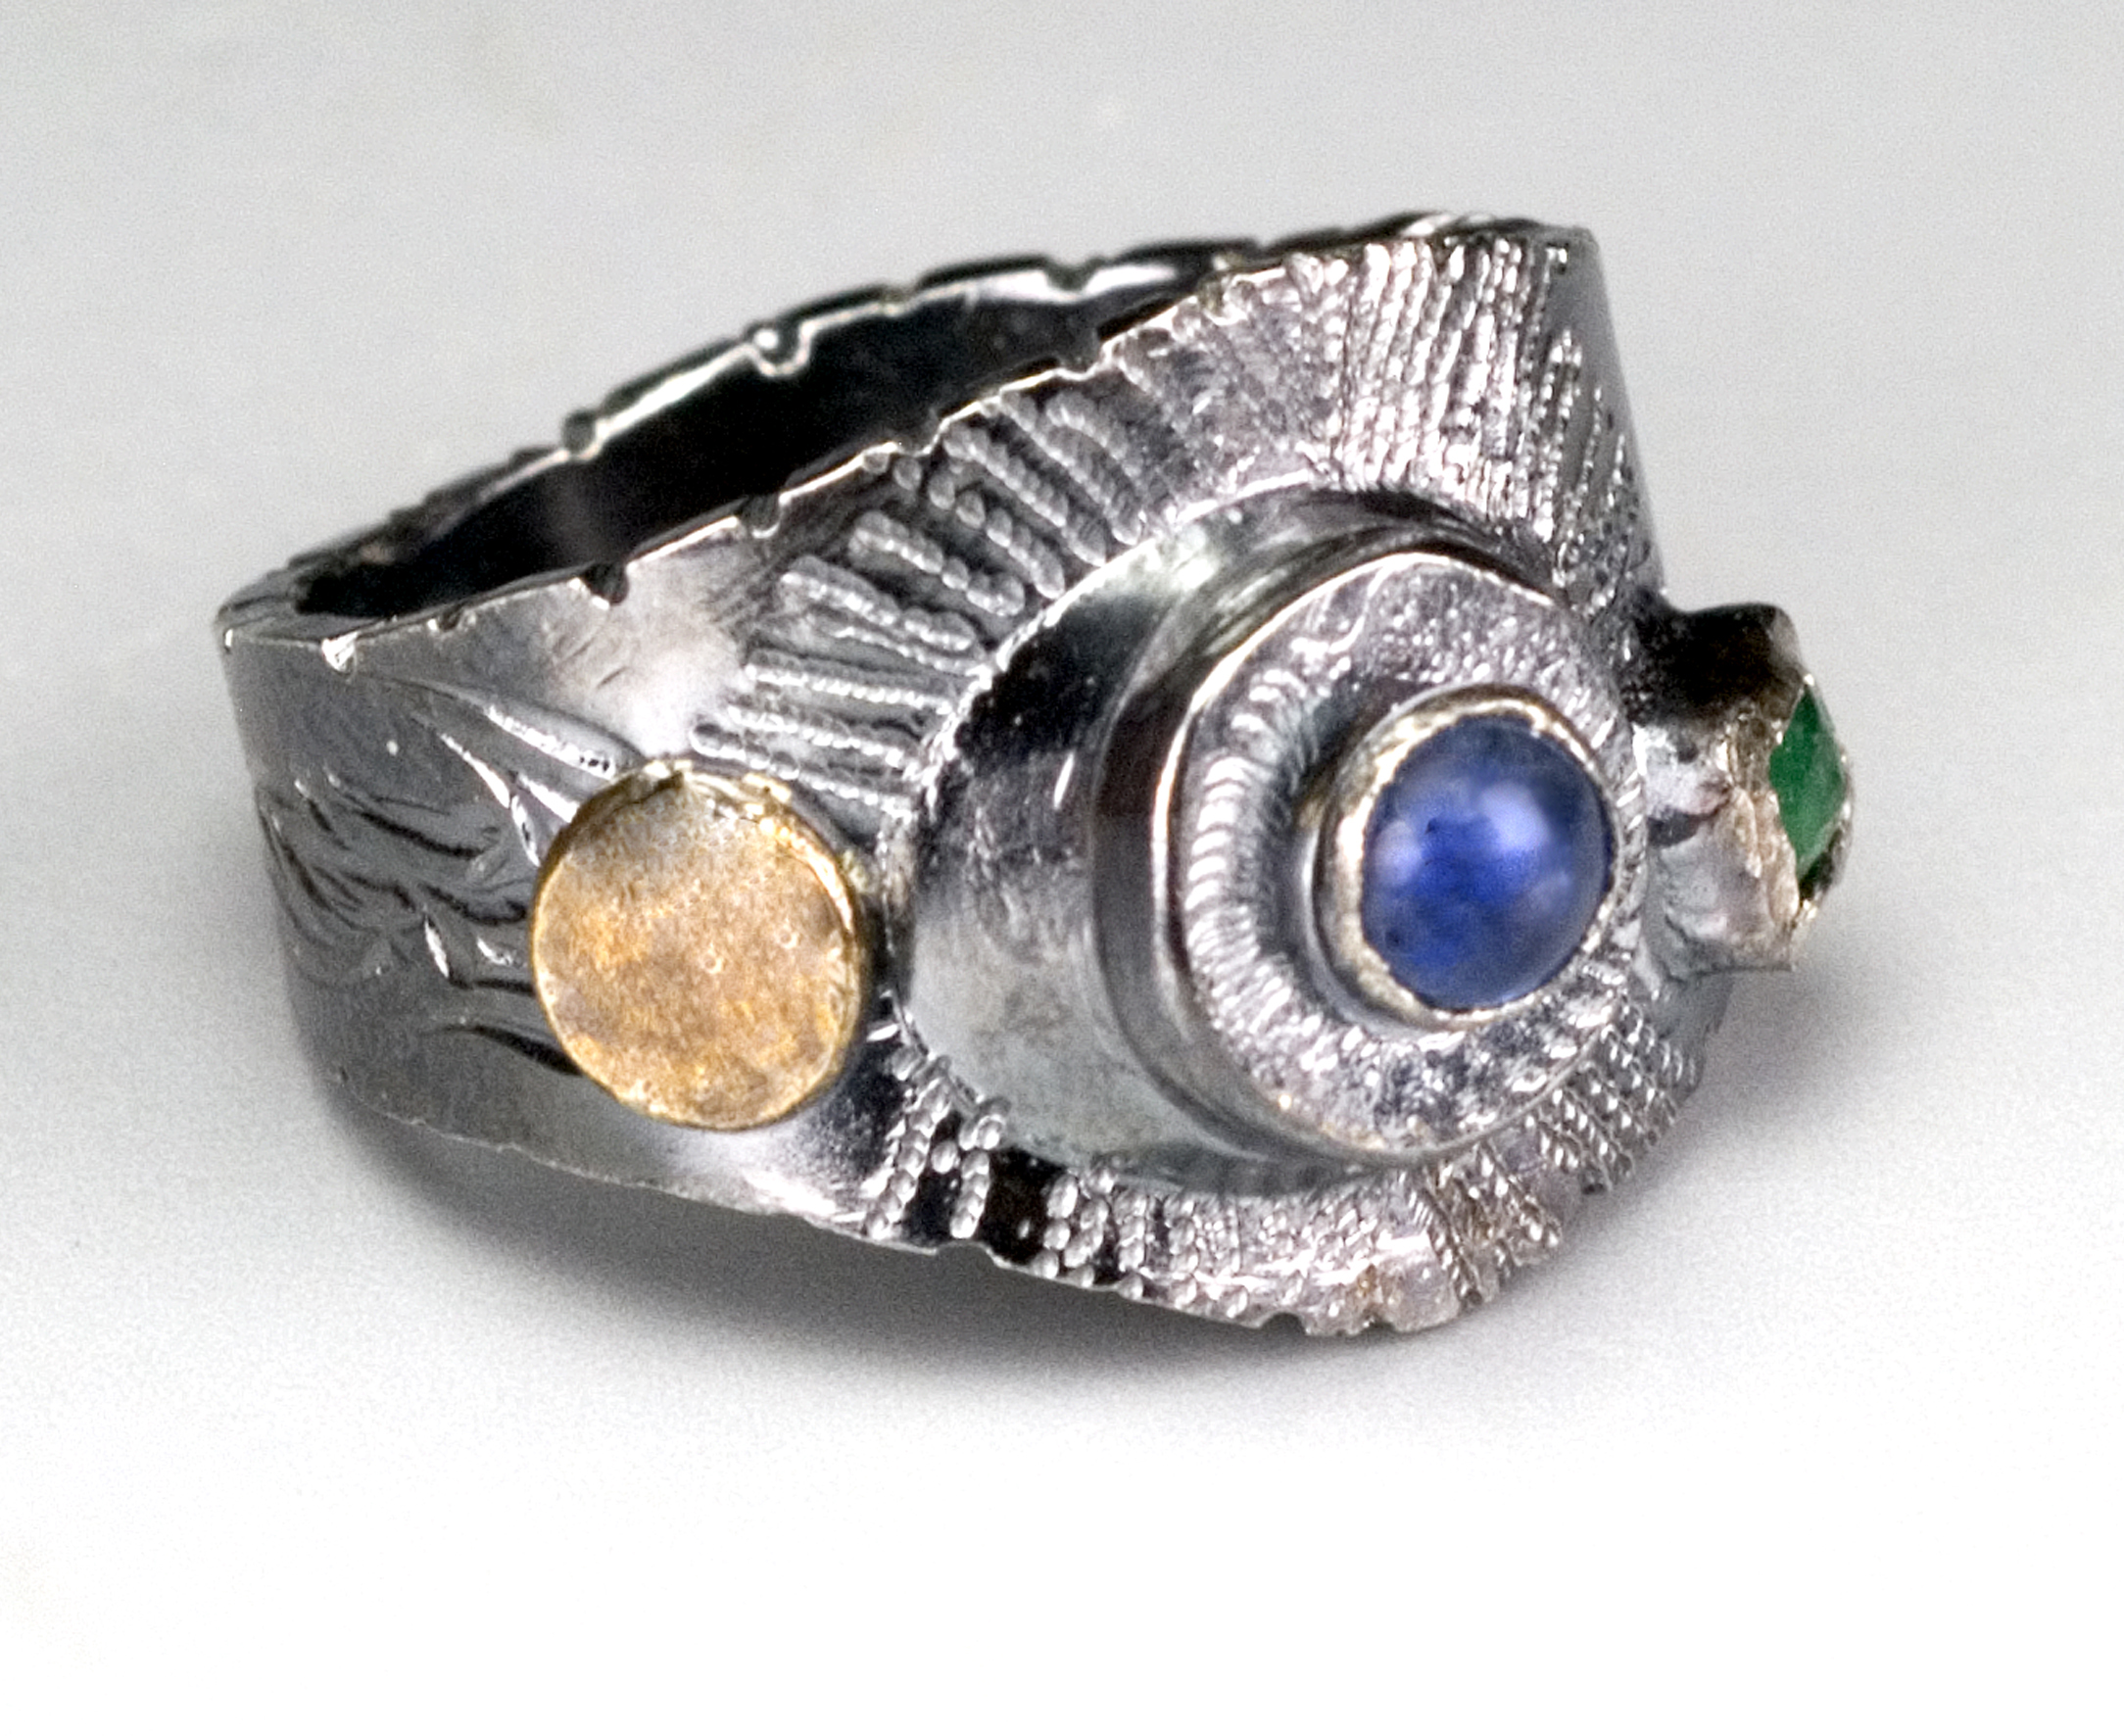 Emerald/Sapphire Ring- collected